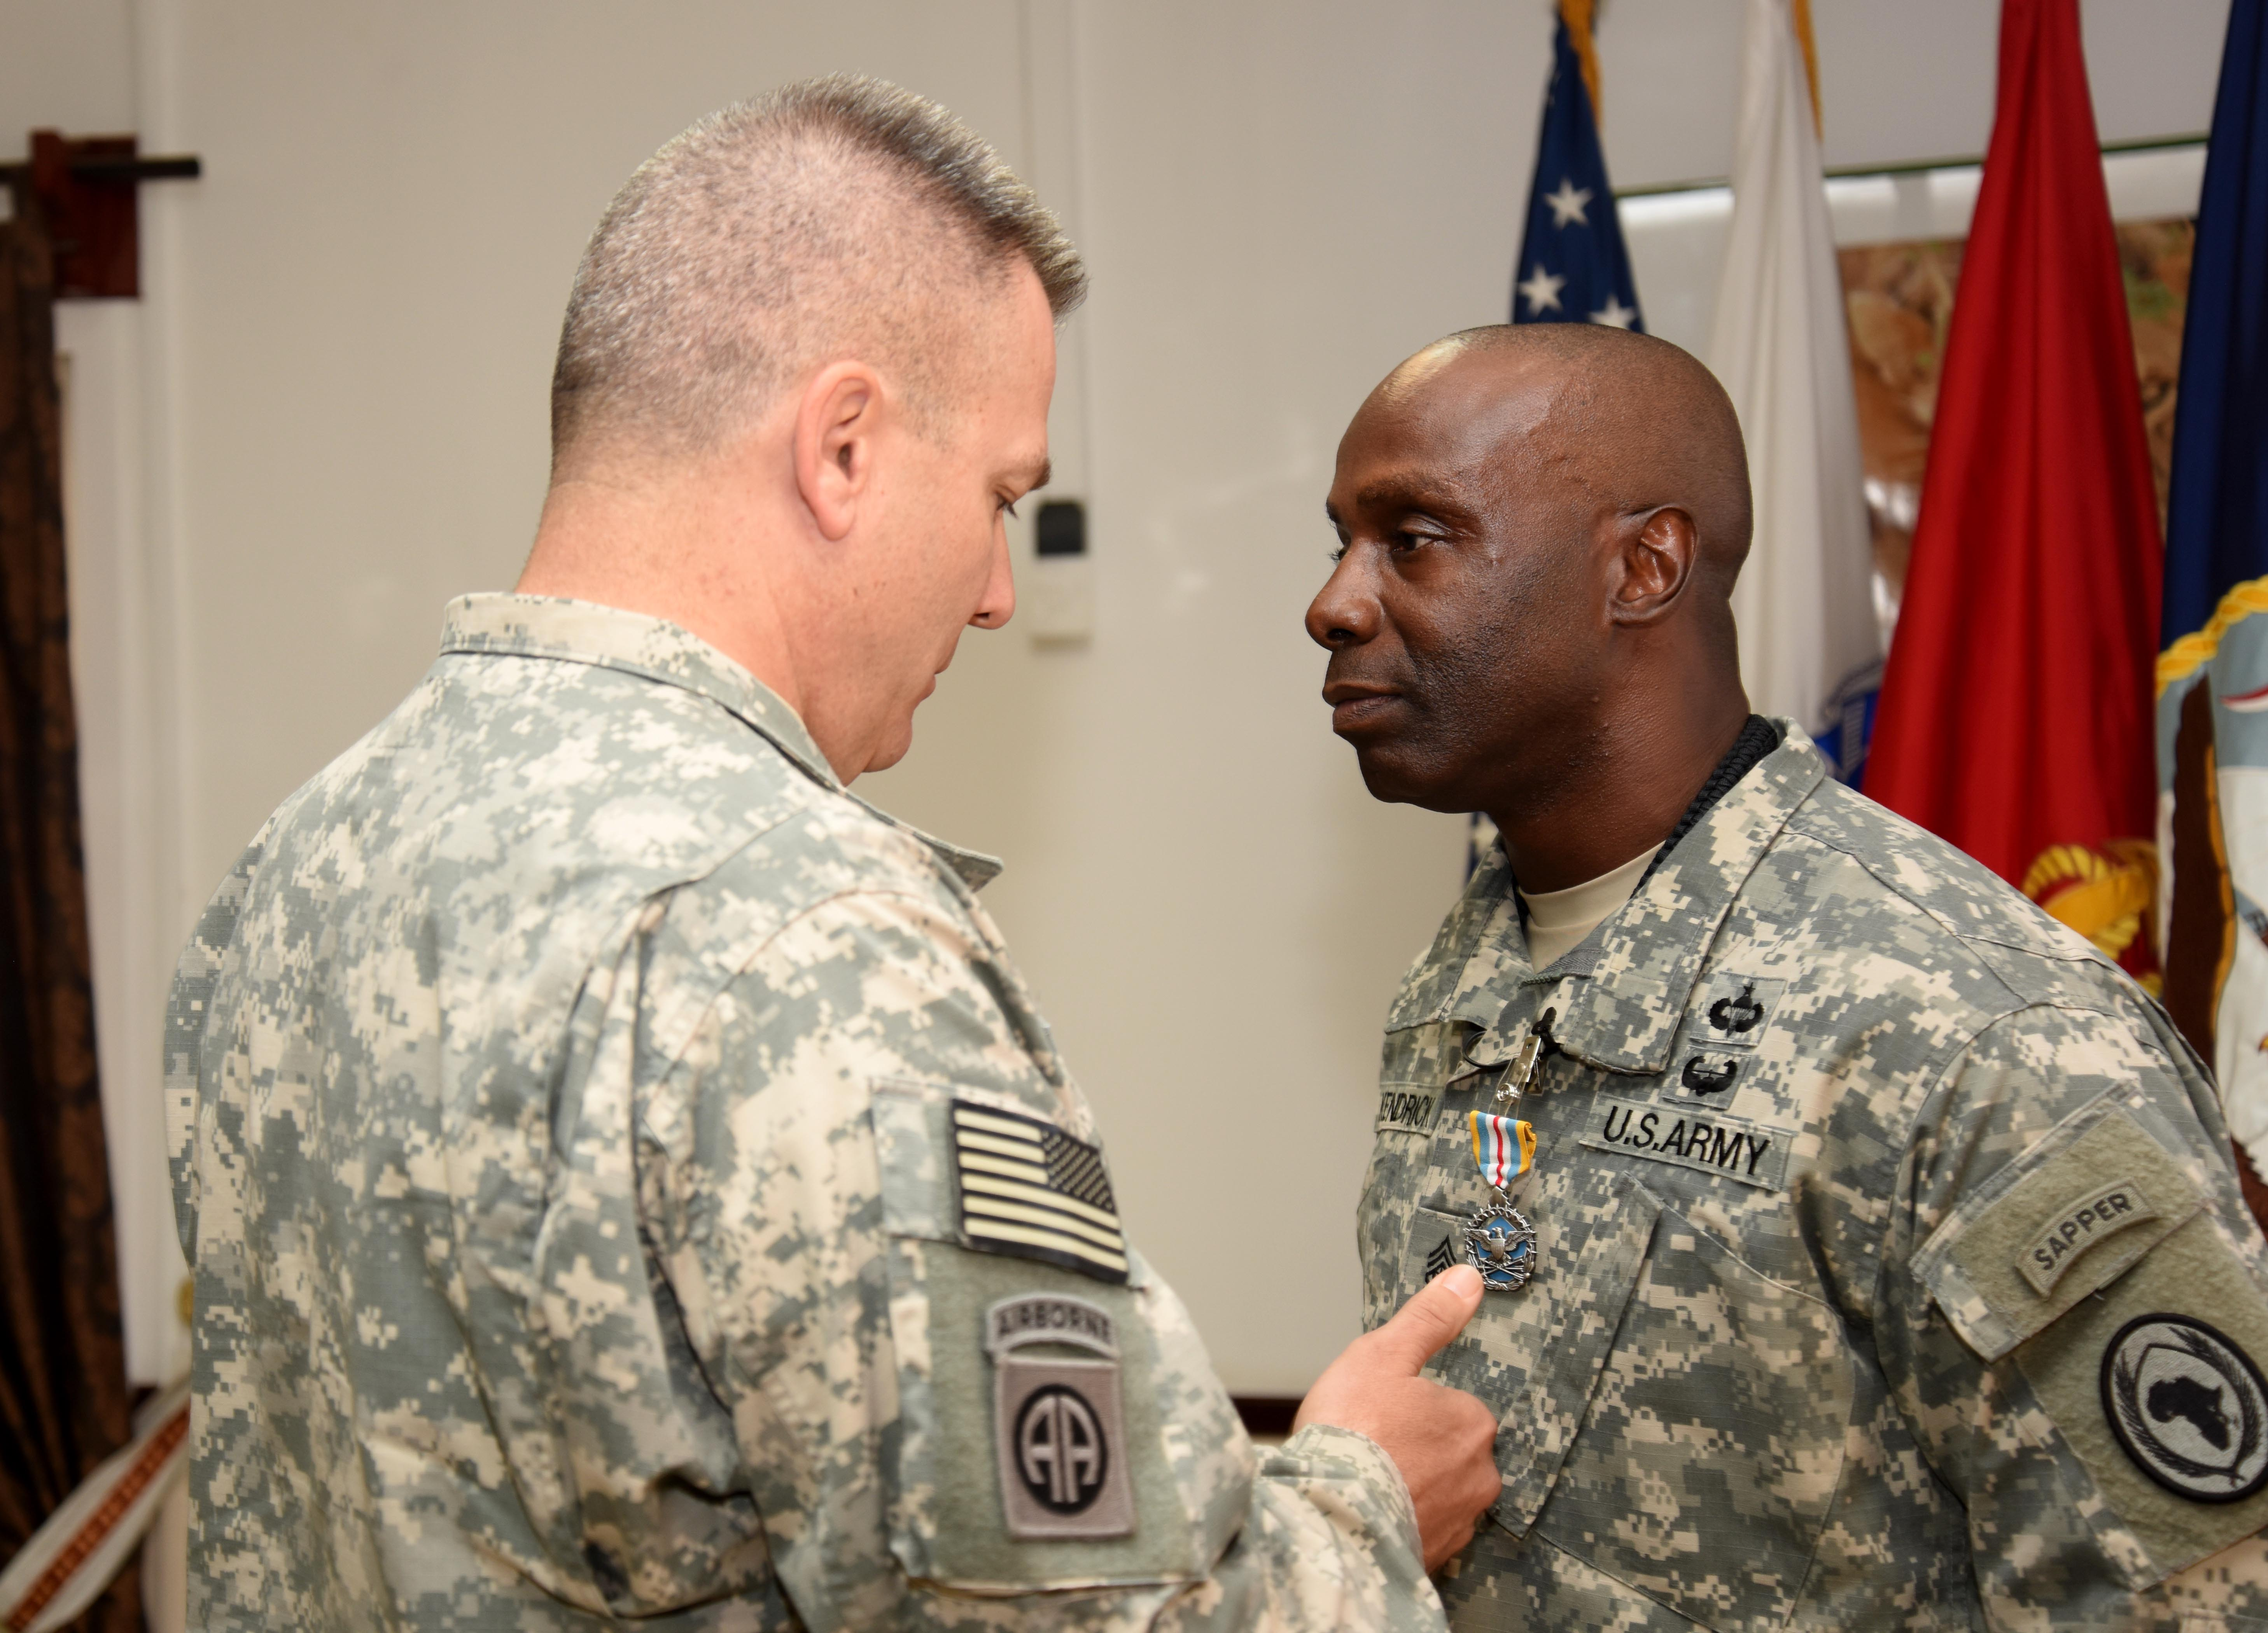 U.S. Army Command Sgt. Maj. Butler Kendrick Jr., Combined Joint Task Force-Horn of Africa command senior enlisted leader, receives the Defense Superior Service Medal at his farewell awards ceremony March 27, 2016. During the ceremony, Kendrick said farewell to colleagues and staff members before heading back to the U.S. (U.S. Air Force photo by Staff Sgt. Kate Thornton)